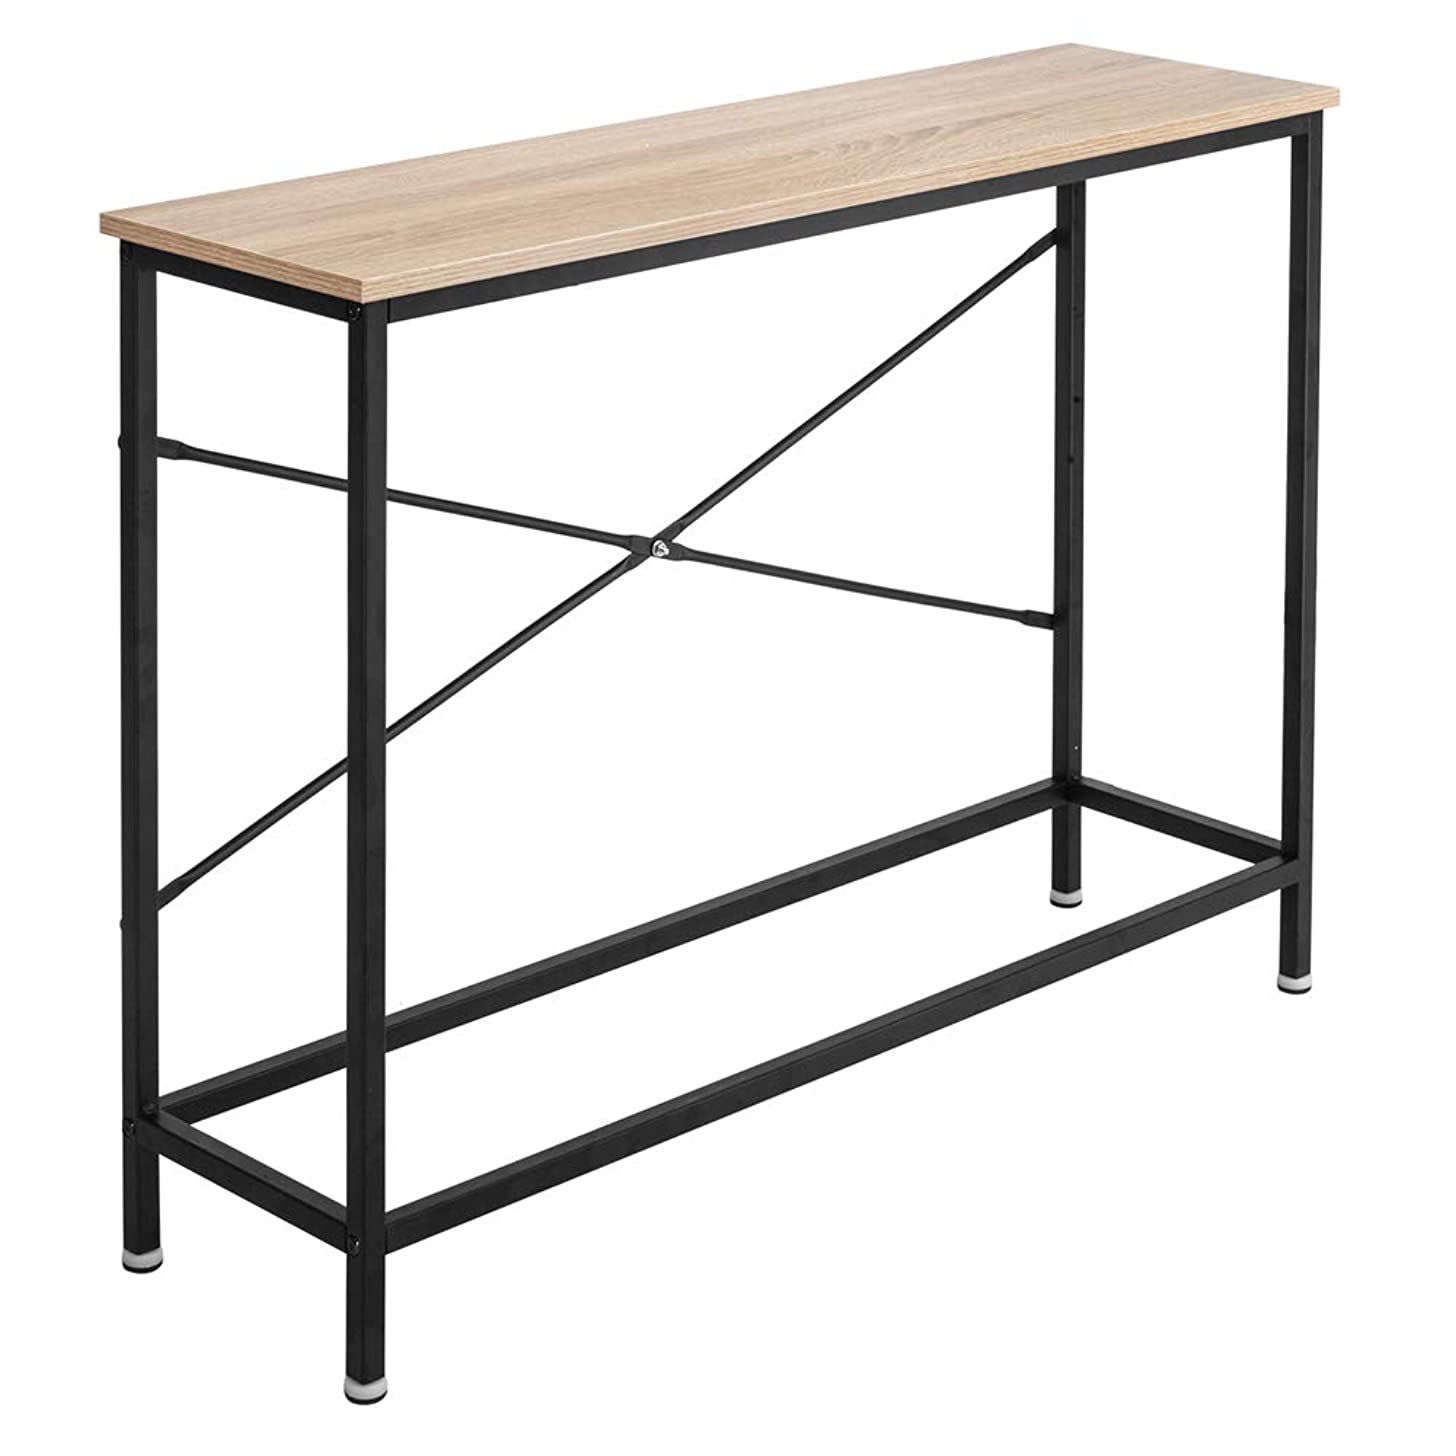 Bonnlo Entry Way Console Table Sturdy Metal Frame Sofa Table with Scratch-Resistant & Water-Resistant Wooden Top